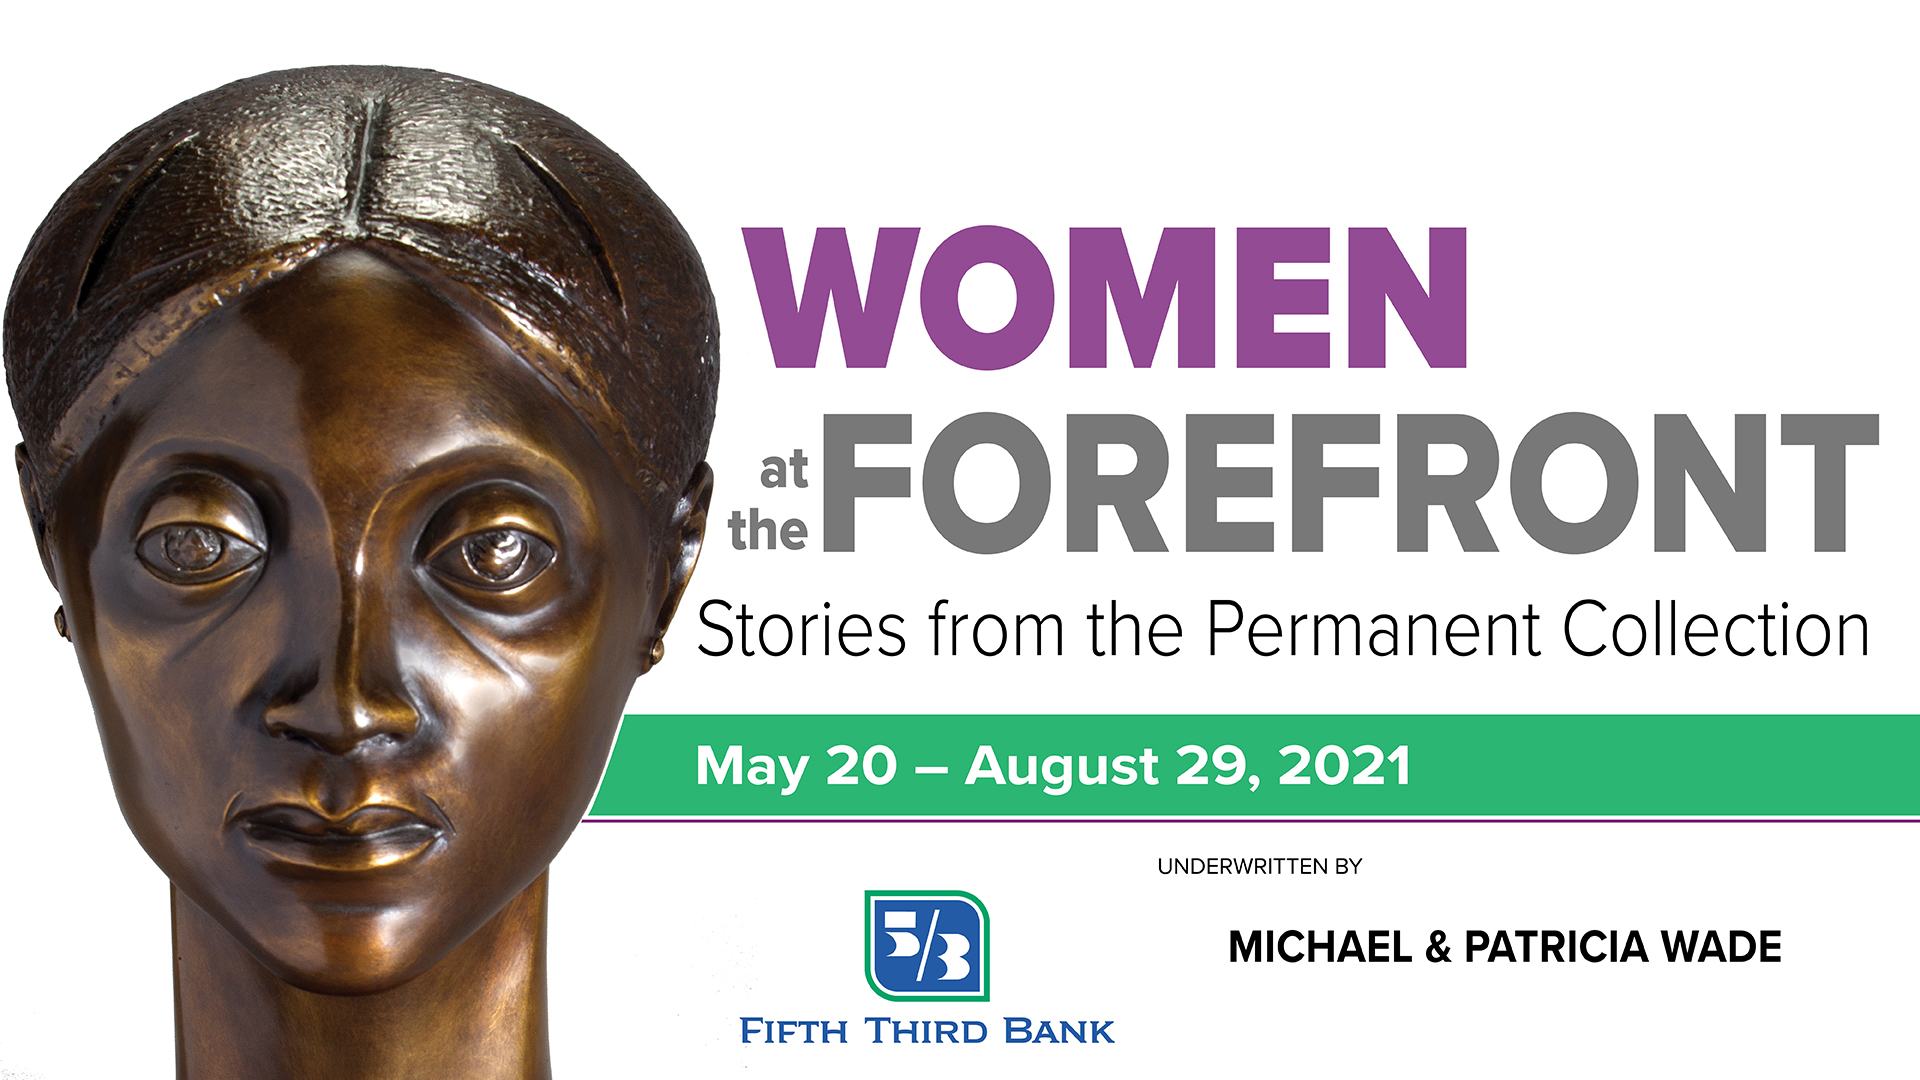 bronze bust of woman's head sits to the left of purple and grey text women at forefront for muskegon museum of art